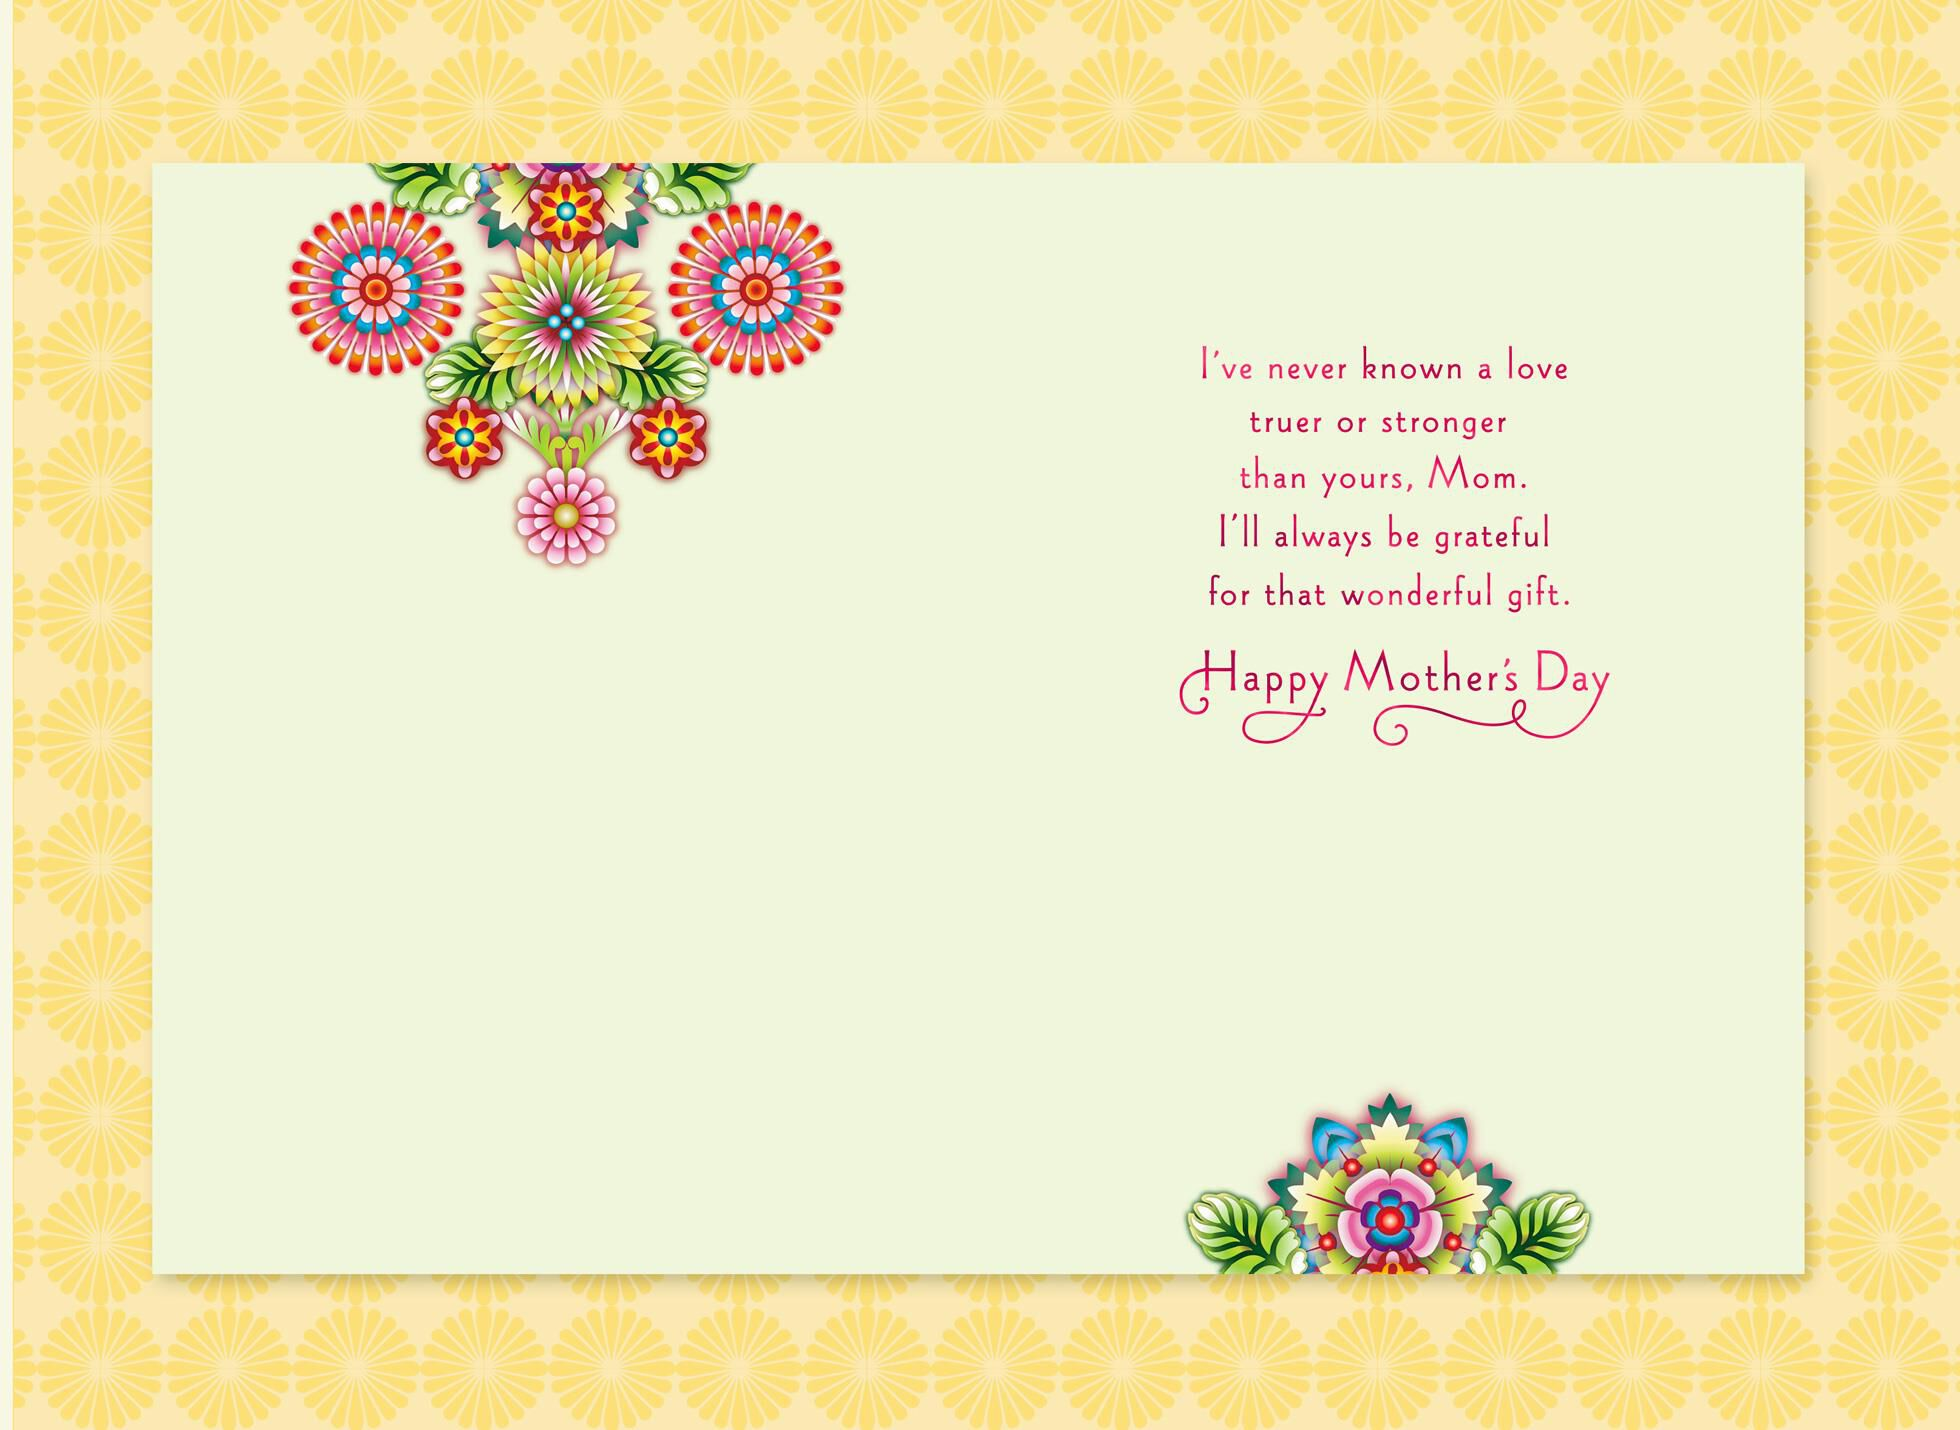 Catalina estrada yellow bird and flowers mother 39 s day card Hallmark flowers